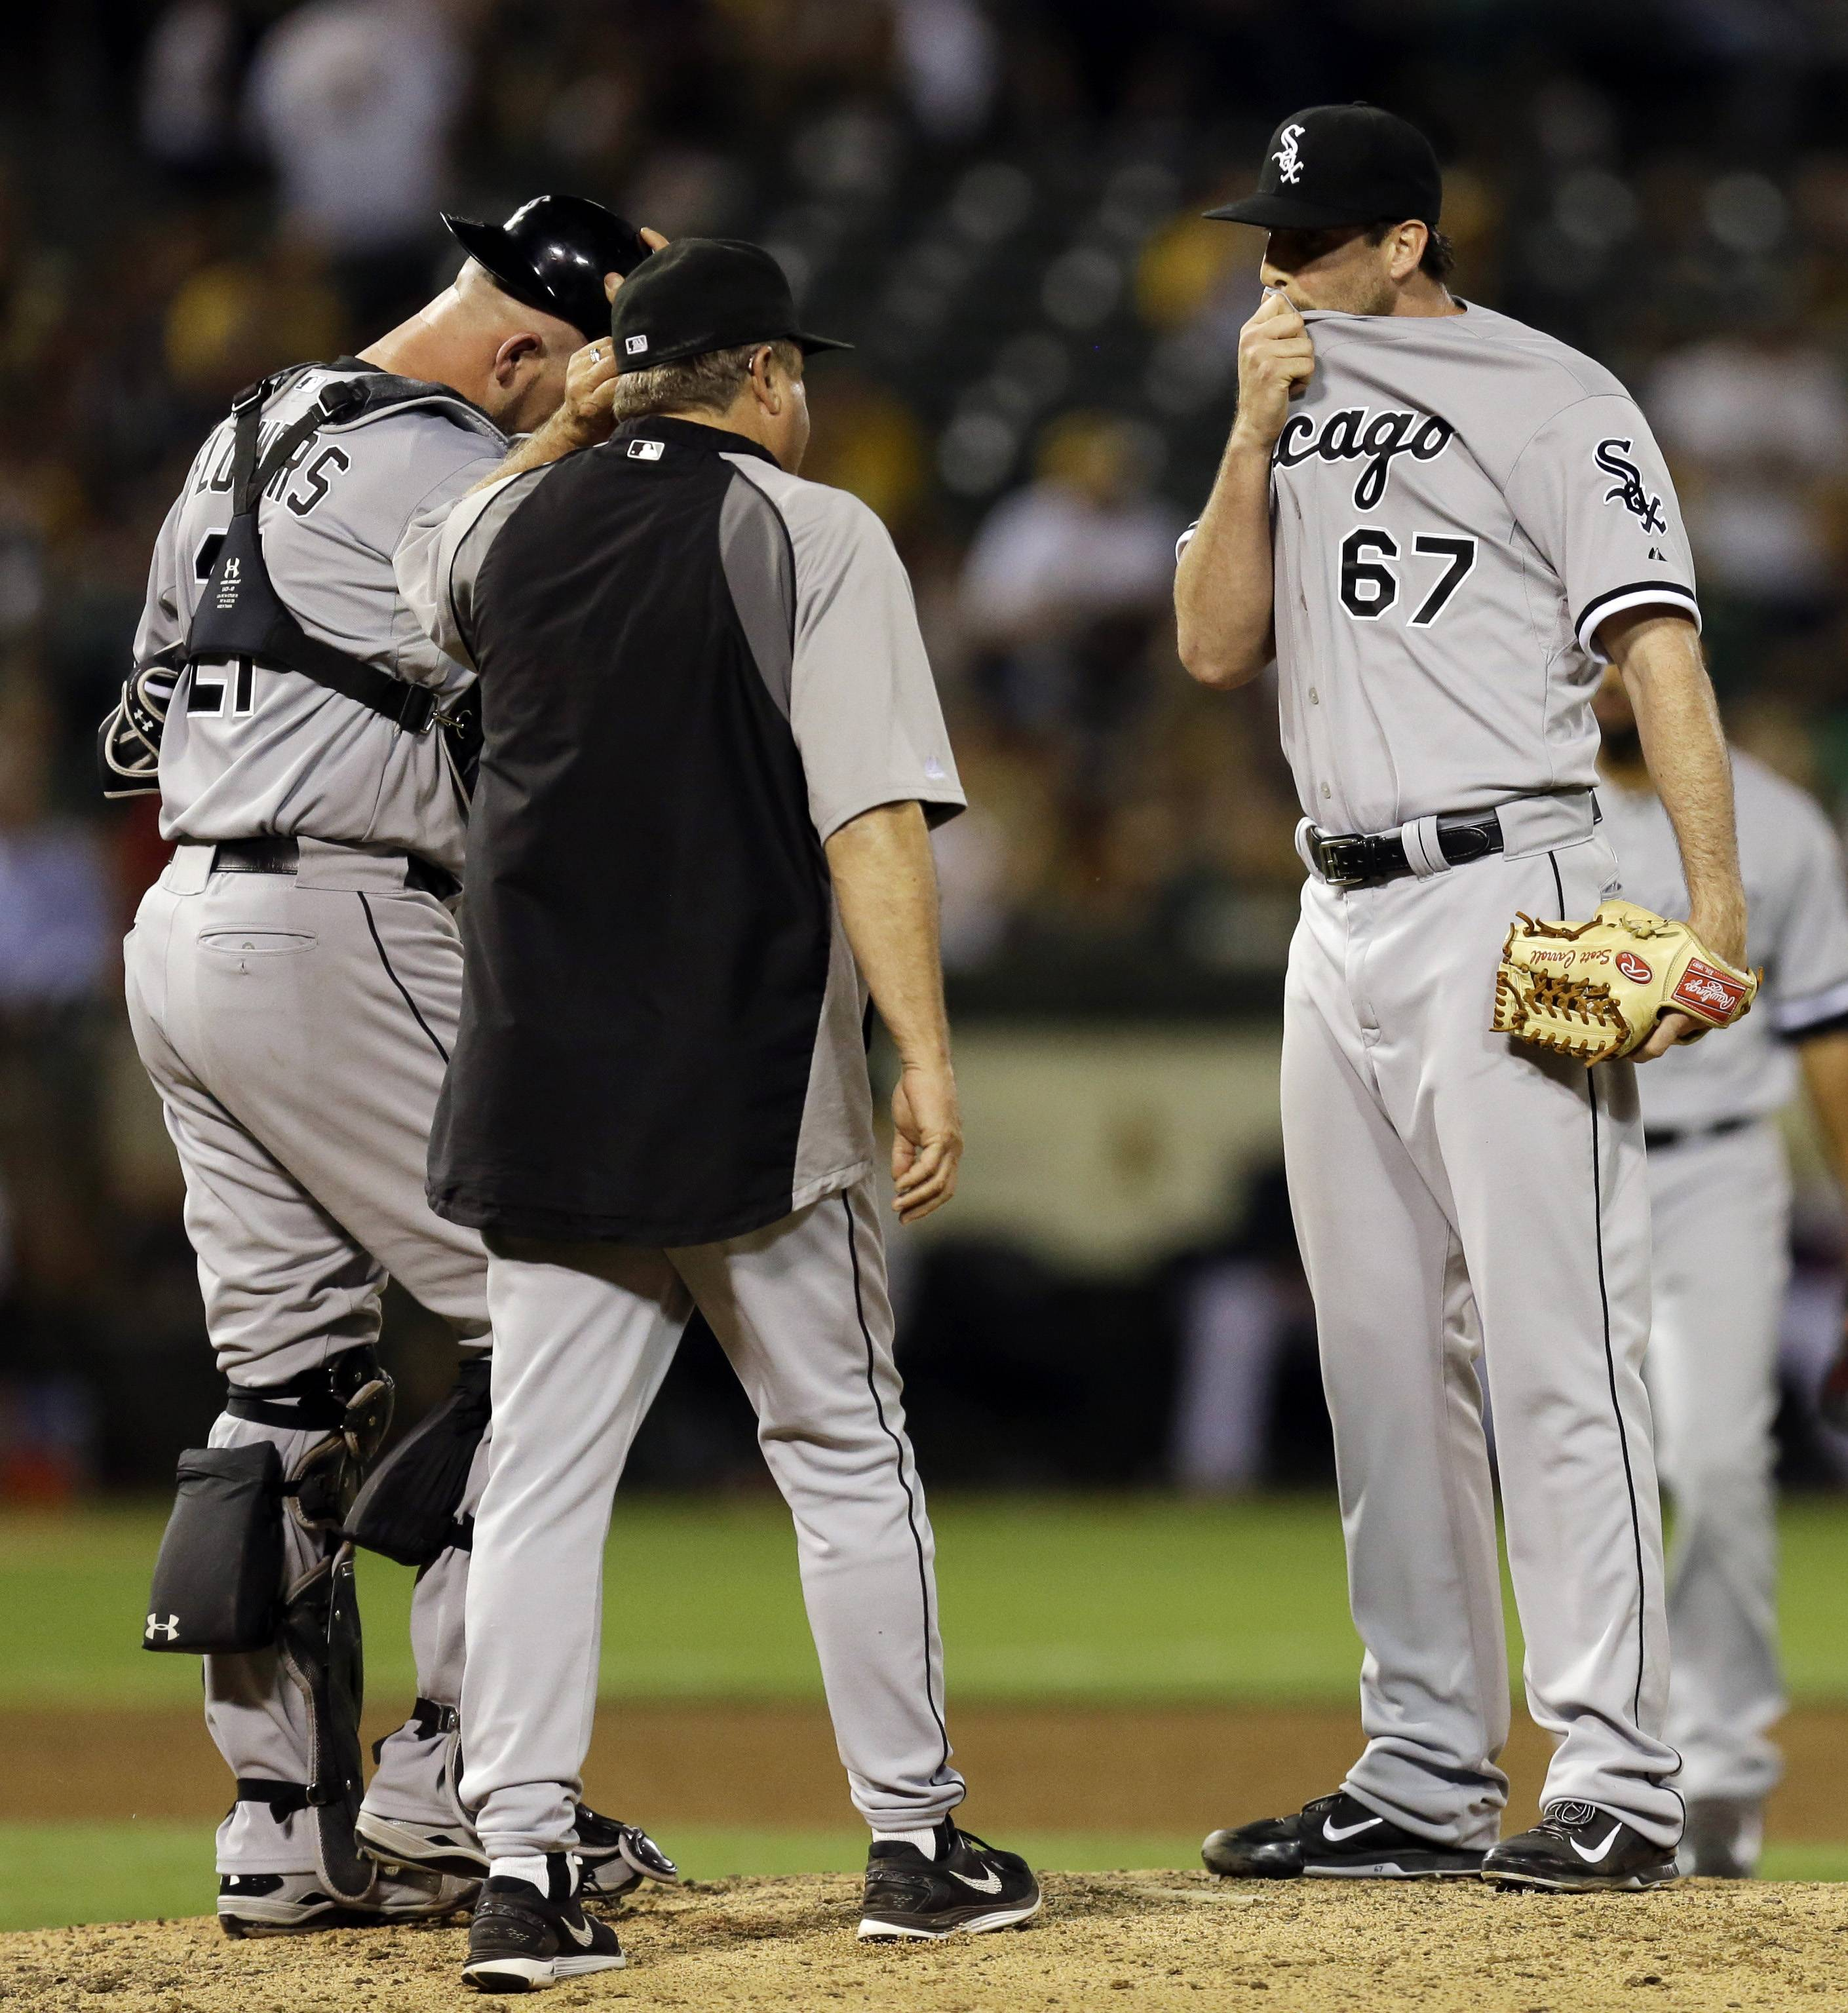 White Sox pitcher Scott Carroll (67) is visited on the pitching mound by coach Don Cooper in the fifth inning of a baseball game against the Oakland Athletics, Tuesday, May 13, 2014, in Oakland, Calif.